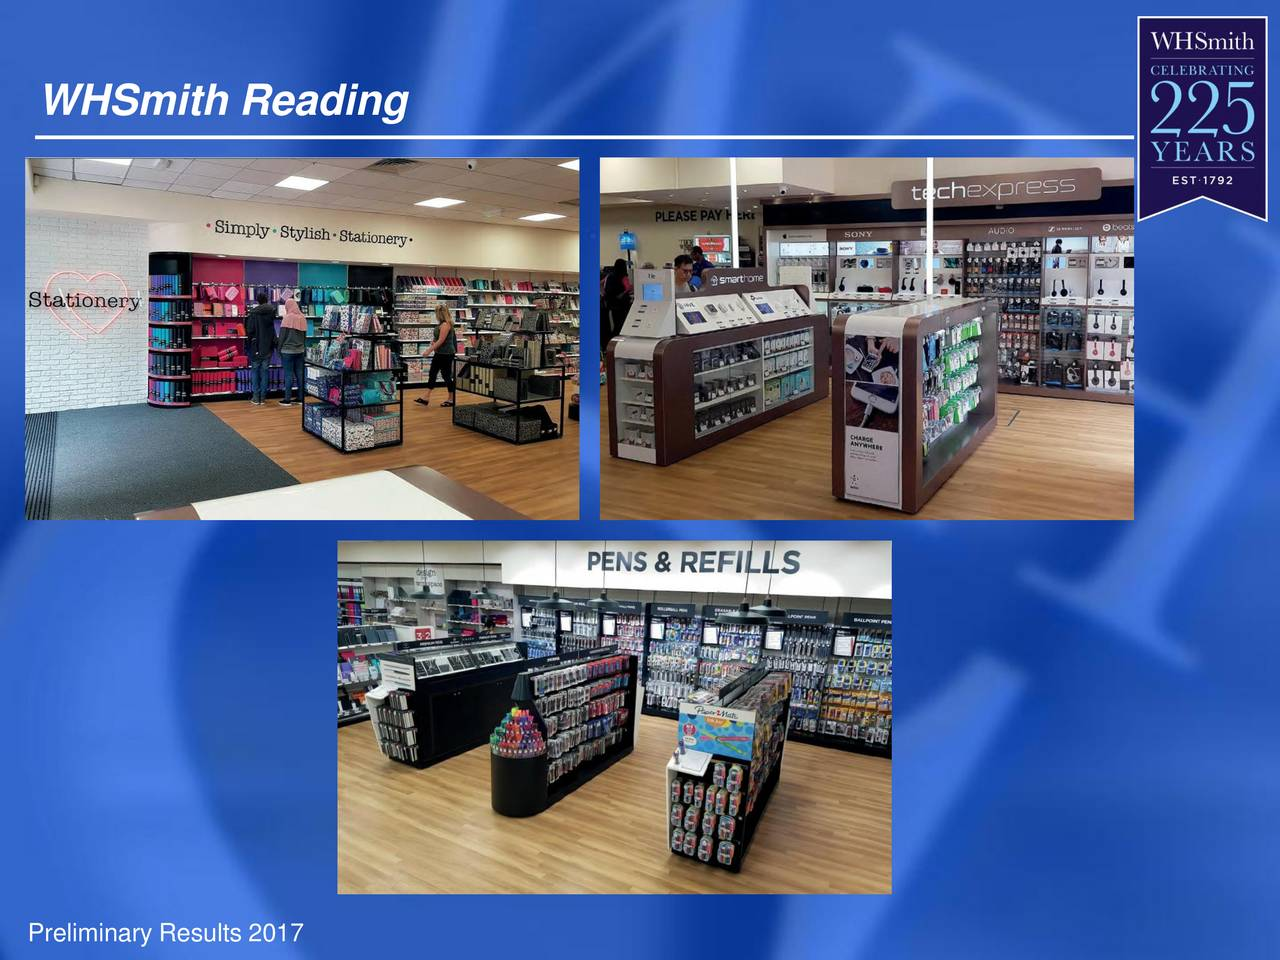 whsmiths strategy Read what current and ex-employees say about working at wh smith get the inside track on pay, people, culture and training all from people who have worked at wh smith.